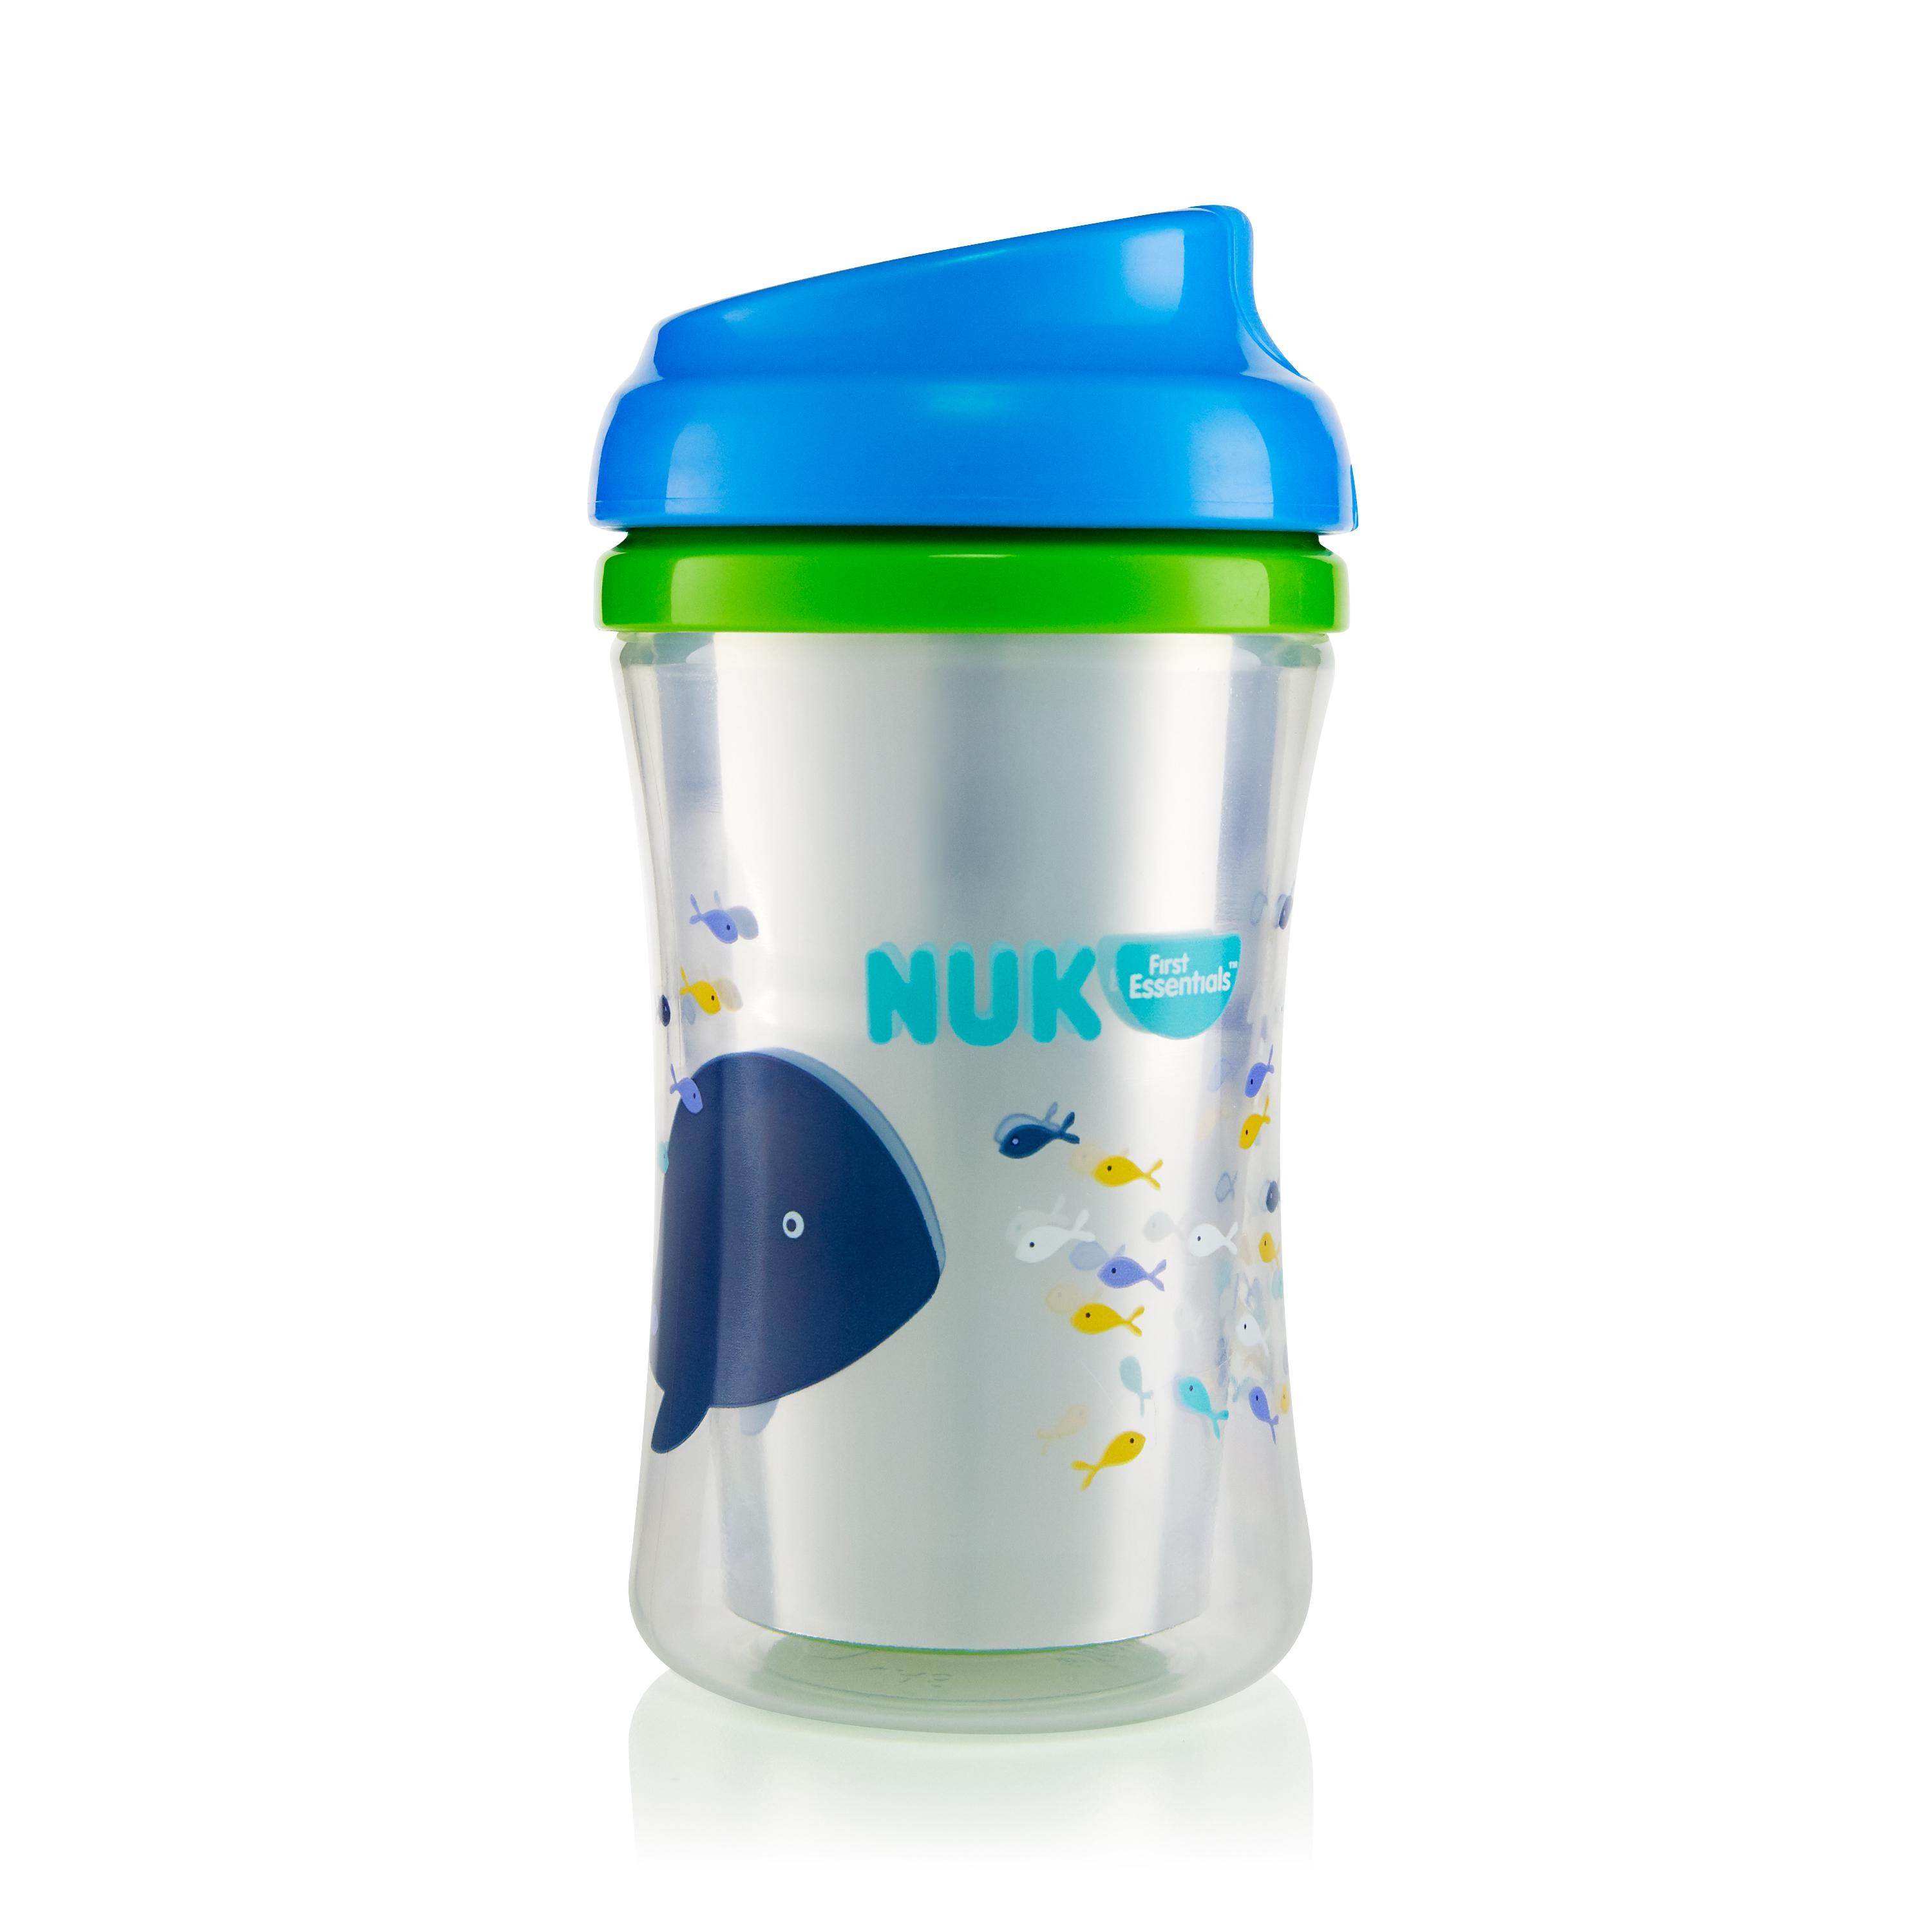 First Essentials by NUK™ Insulated Cup-like Rim Sippy Cup, 9 oz., 2-Pack Product Image 3 of 6